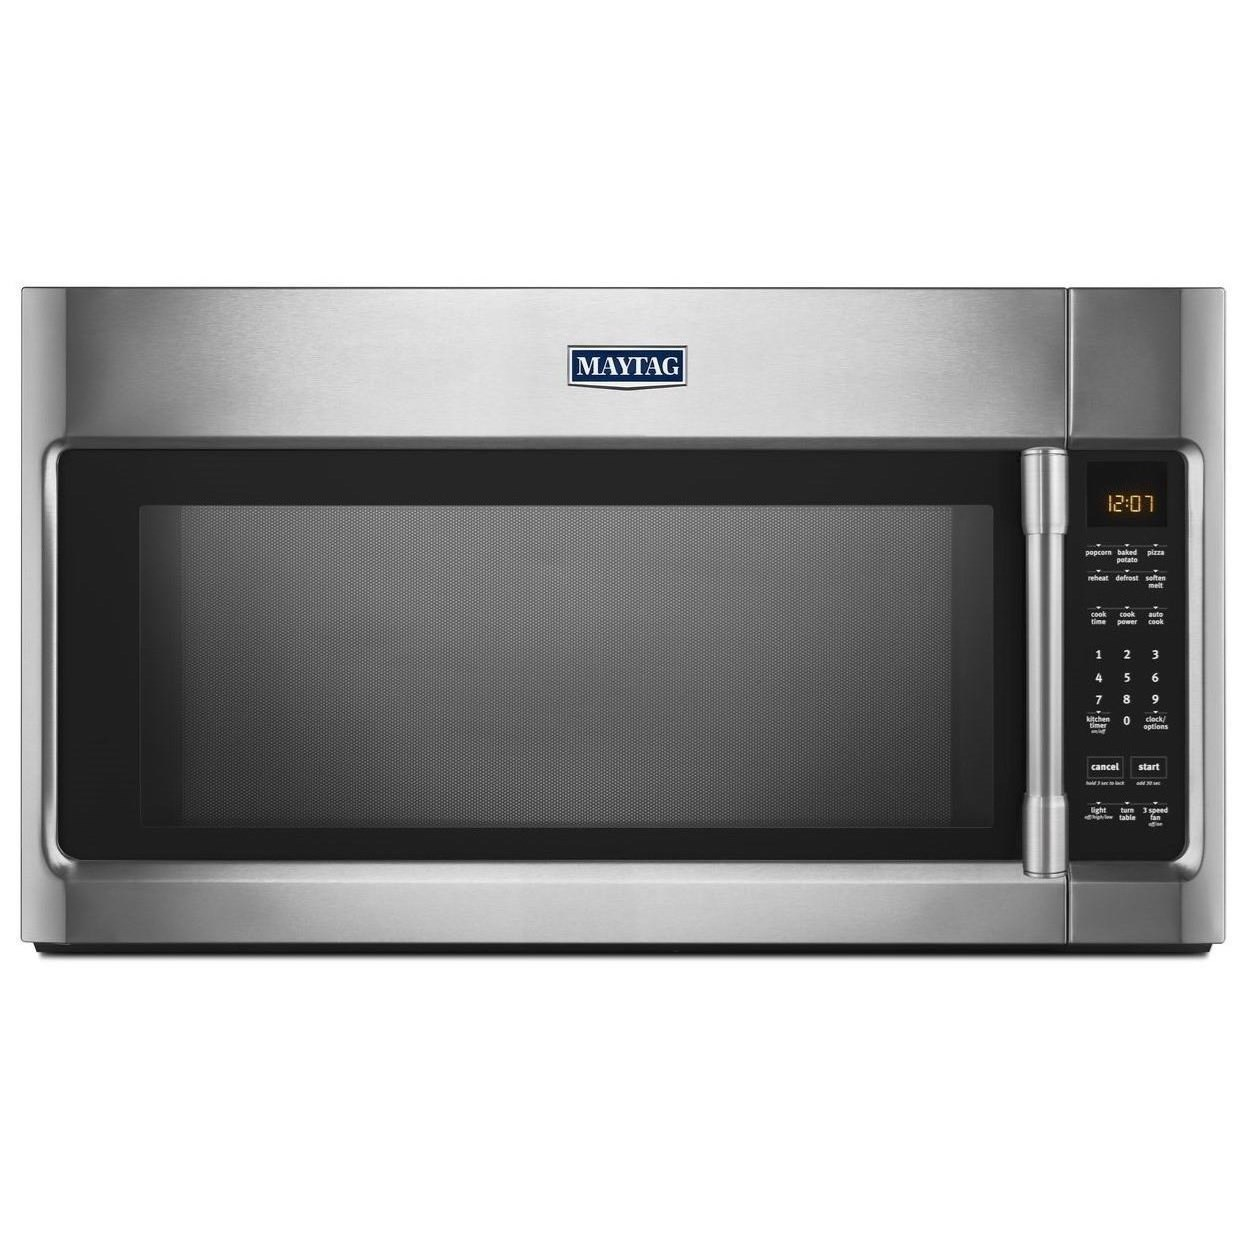 2.0 Cu. Ft. Over-the-range Microwave